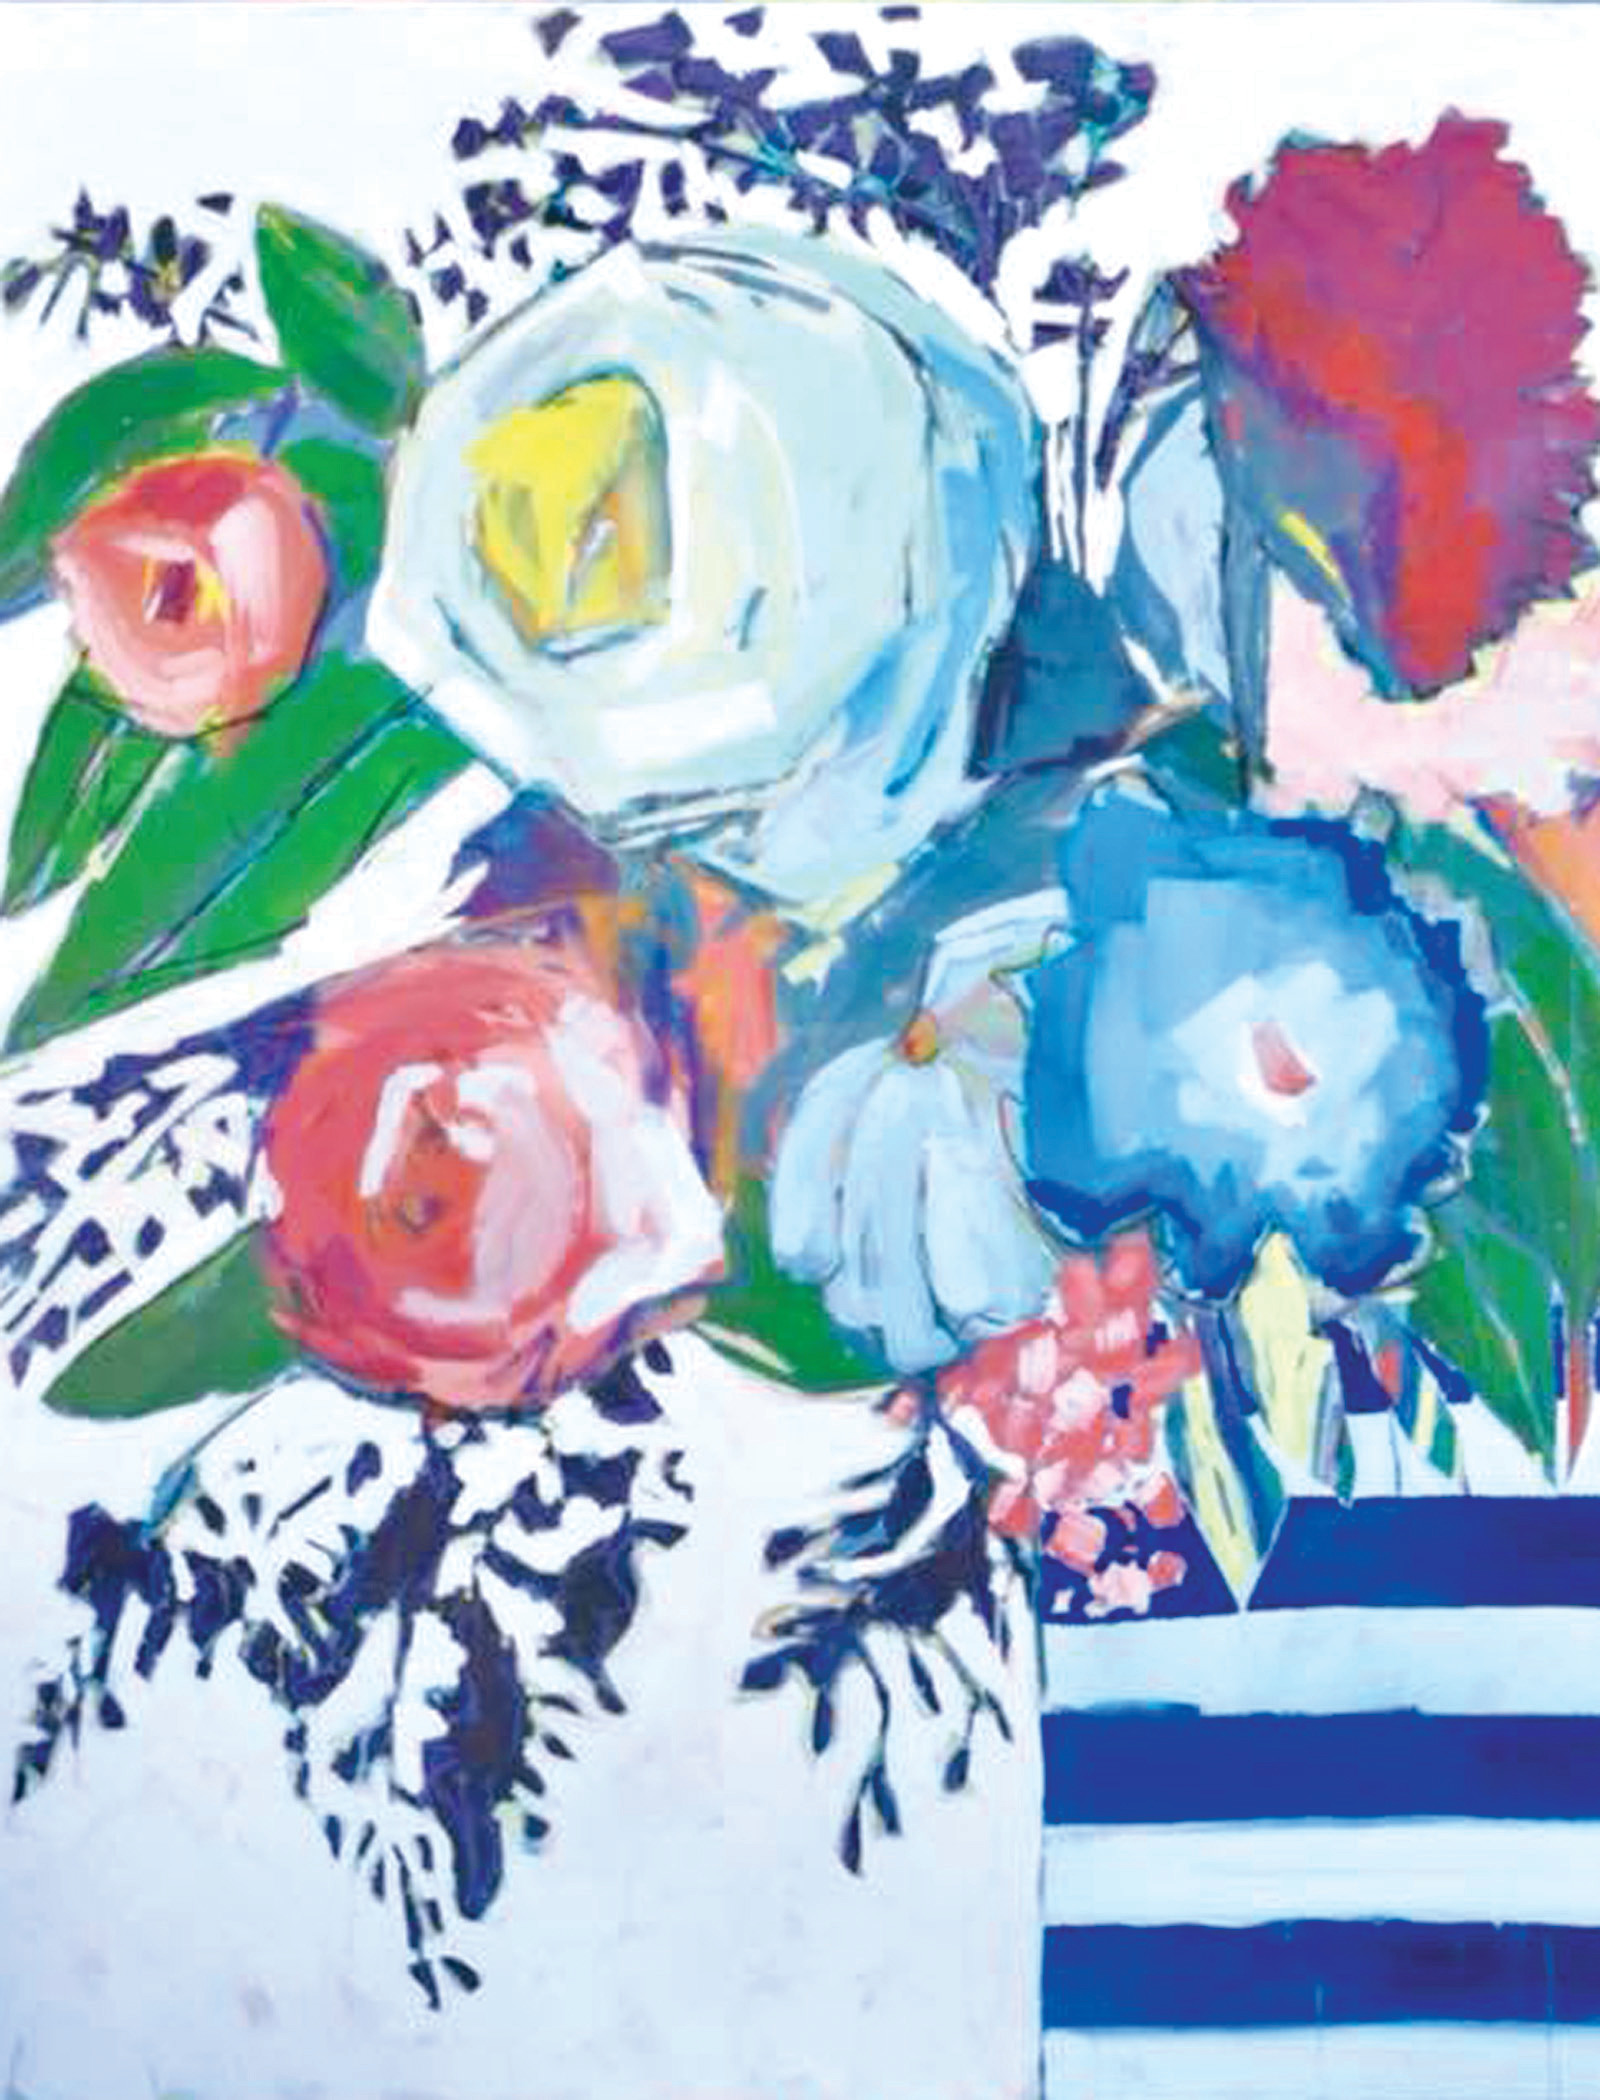 Amanda Cox's painting of flowers is shown.